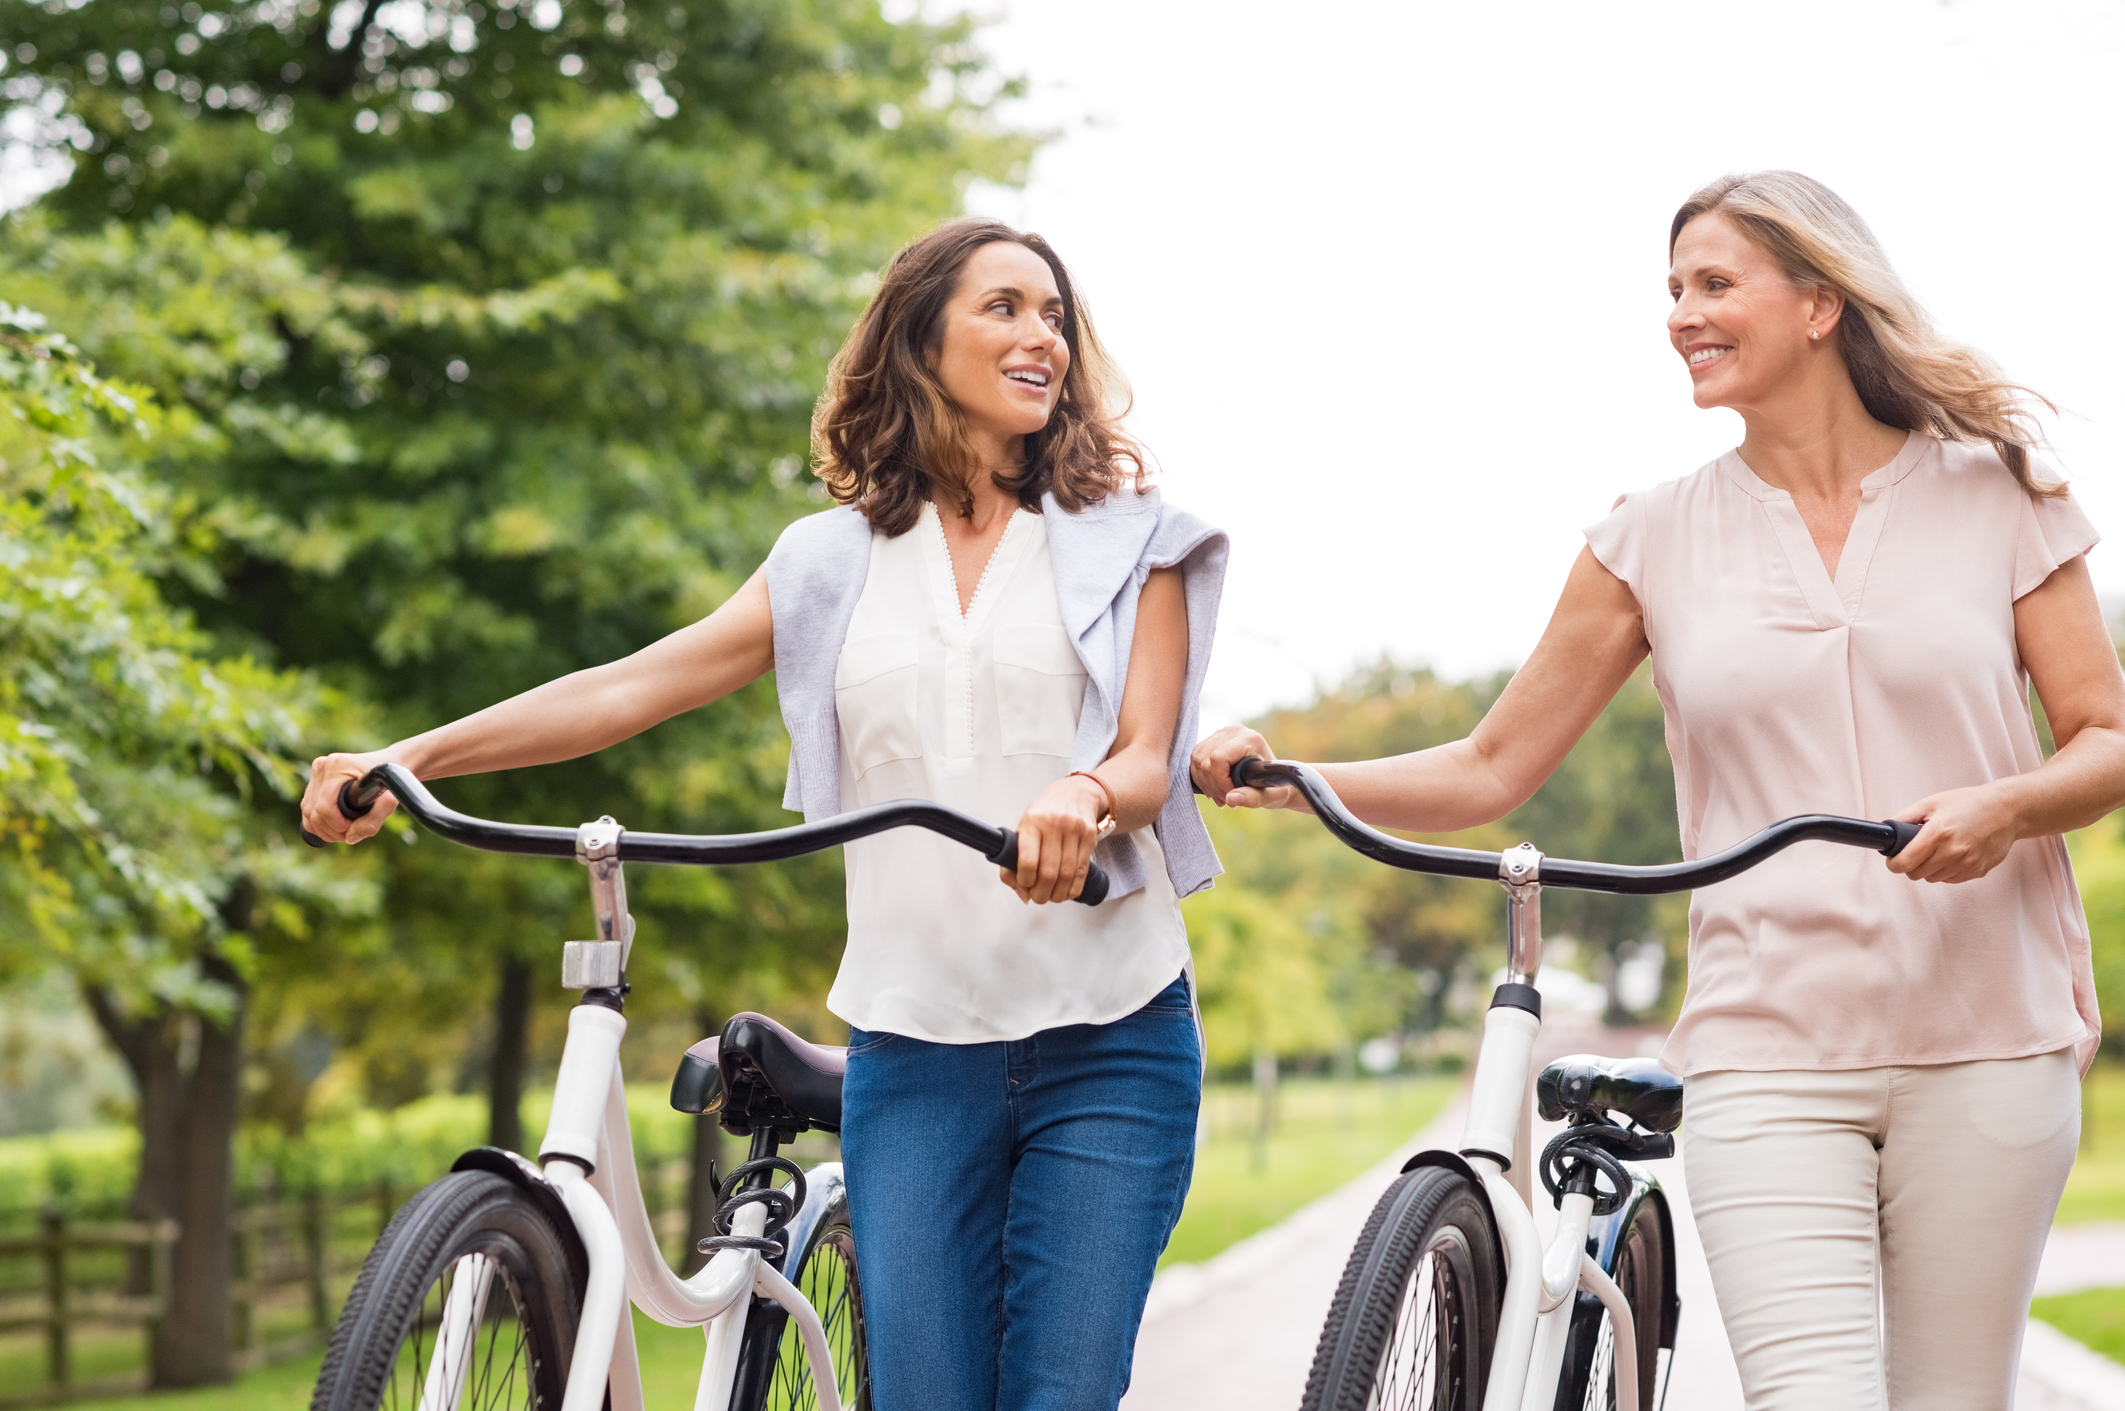 two women walking thier bikes outside taking to each other